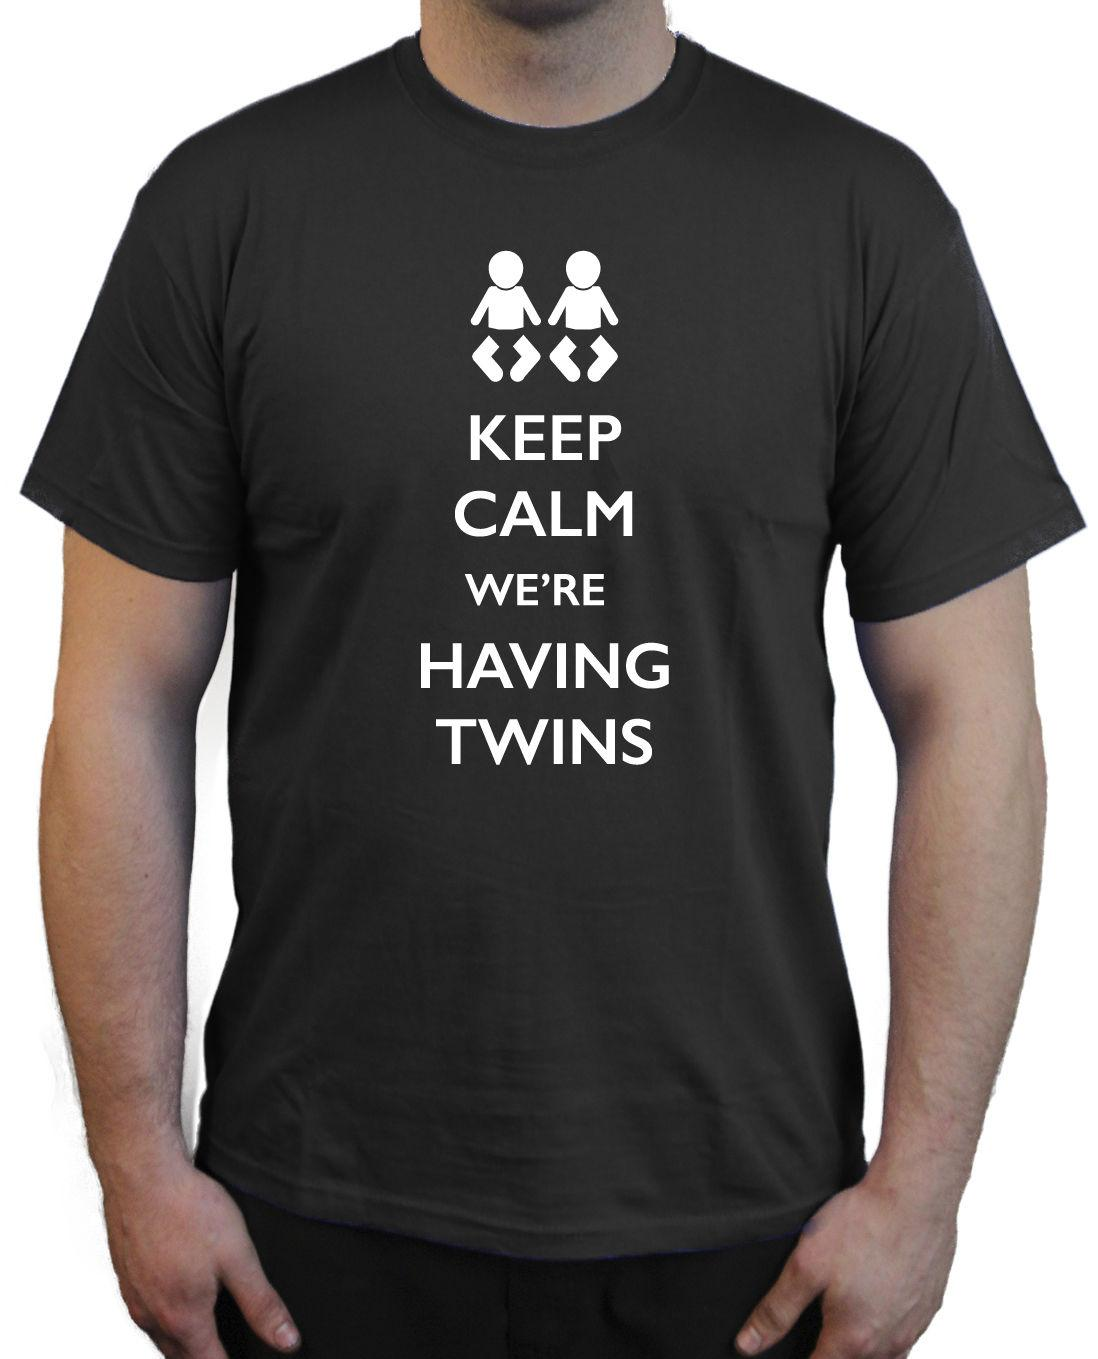 c5f96720 Keep Calm we're Having Twins Printed T-Shirt ~ Novelty Birthday Present  Funny size discout hot new tshirt top free shipping t-shirt